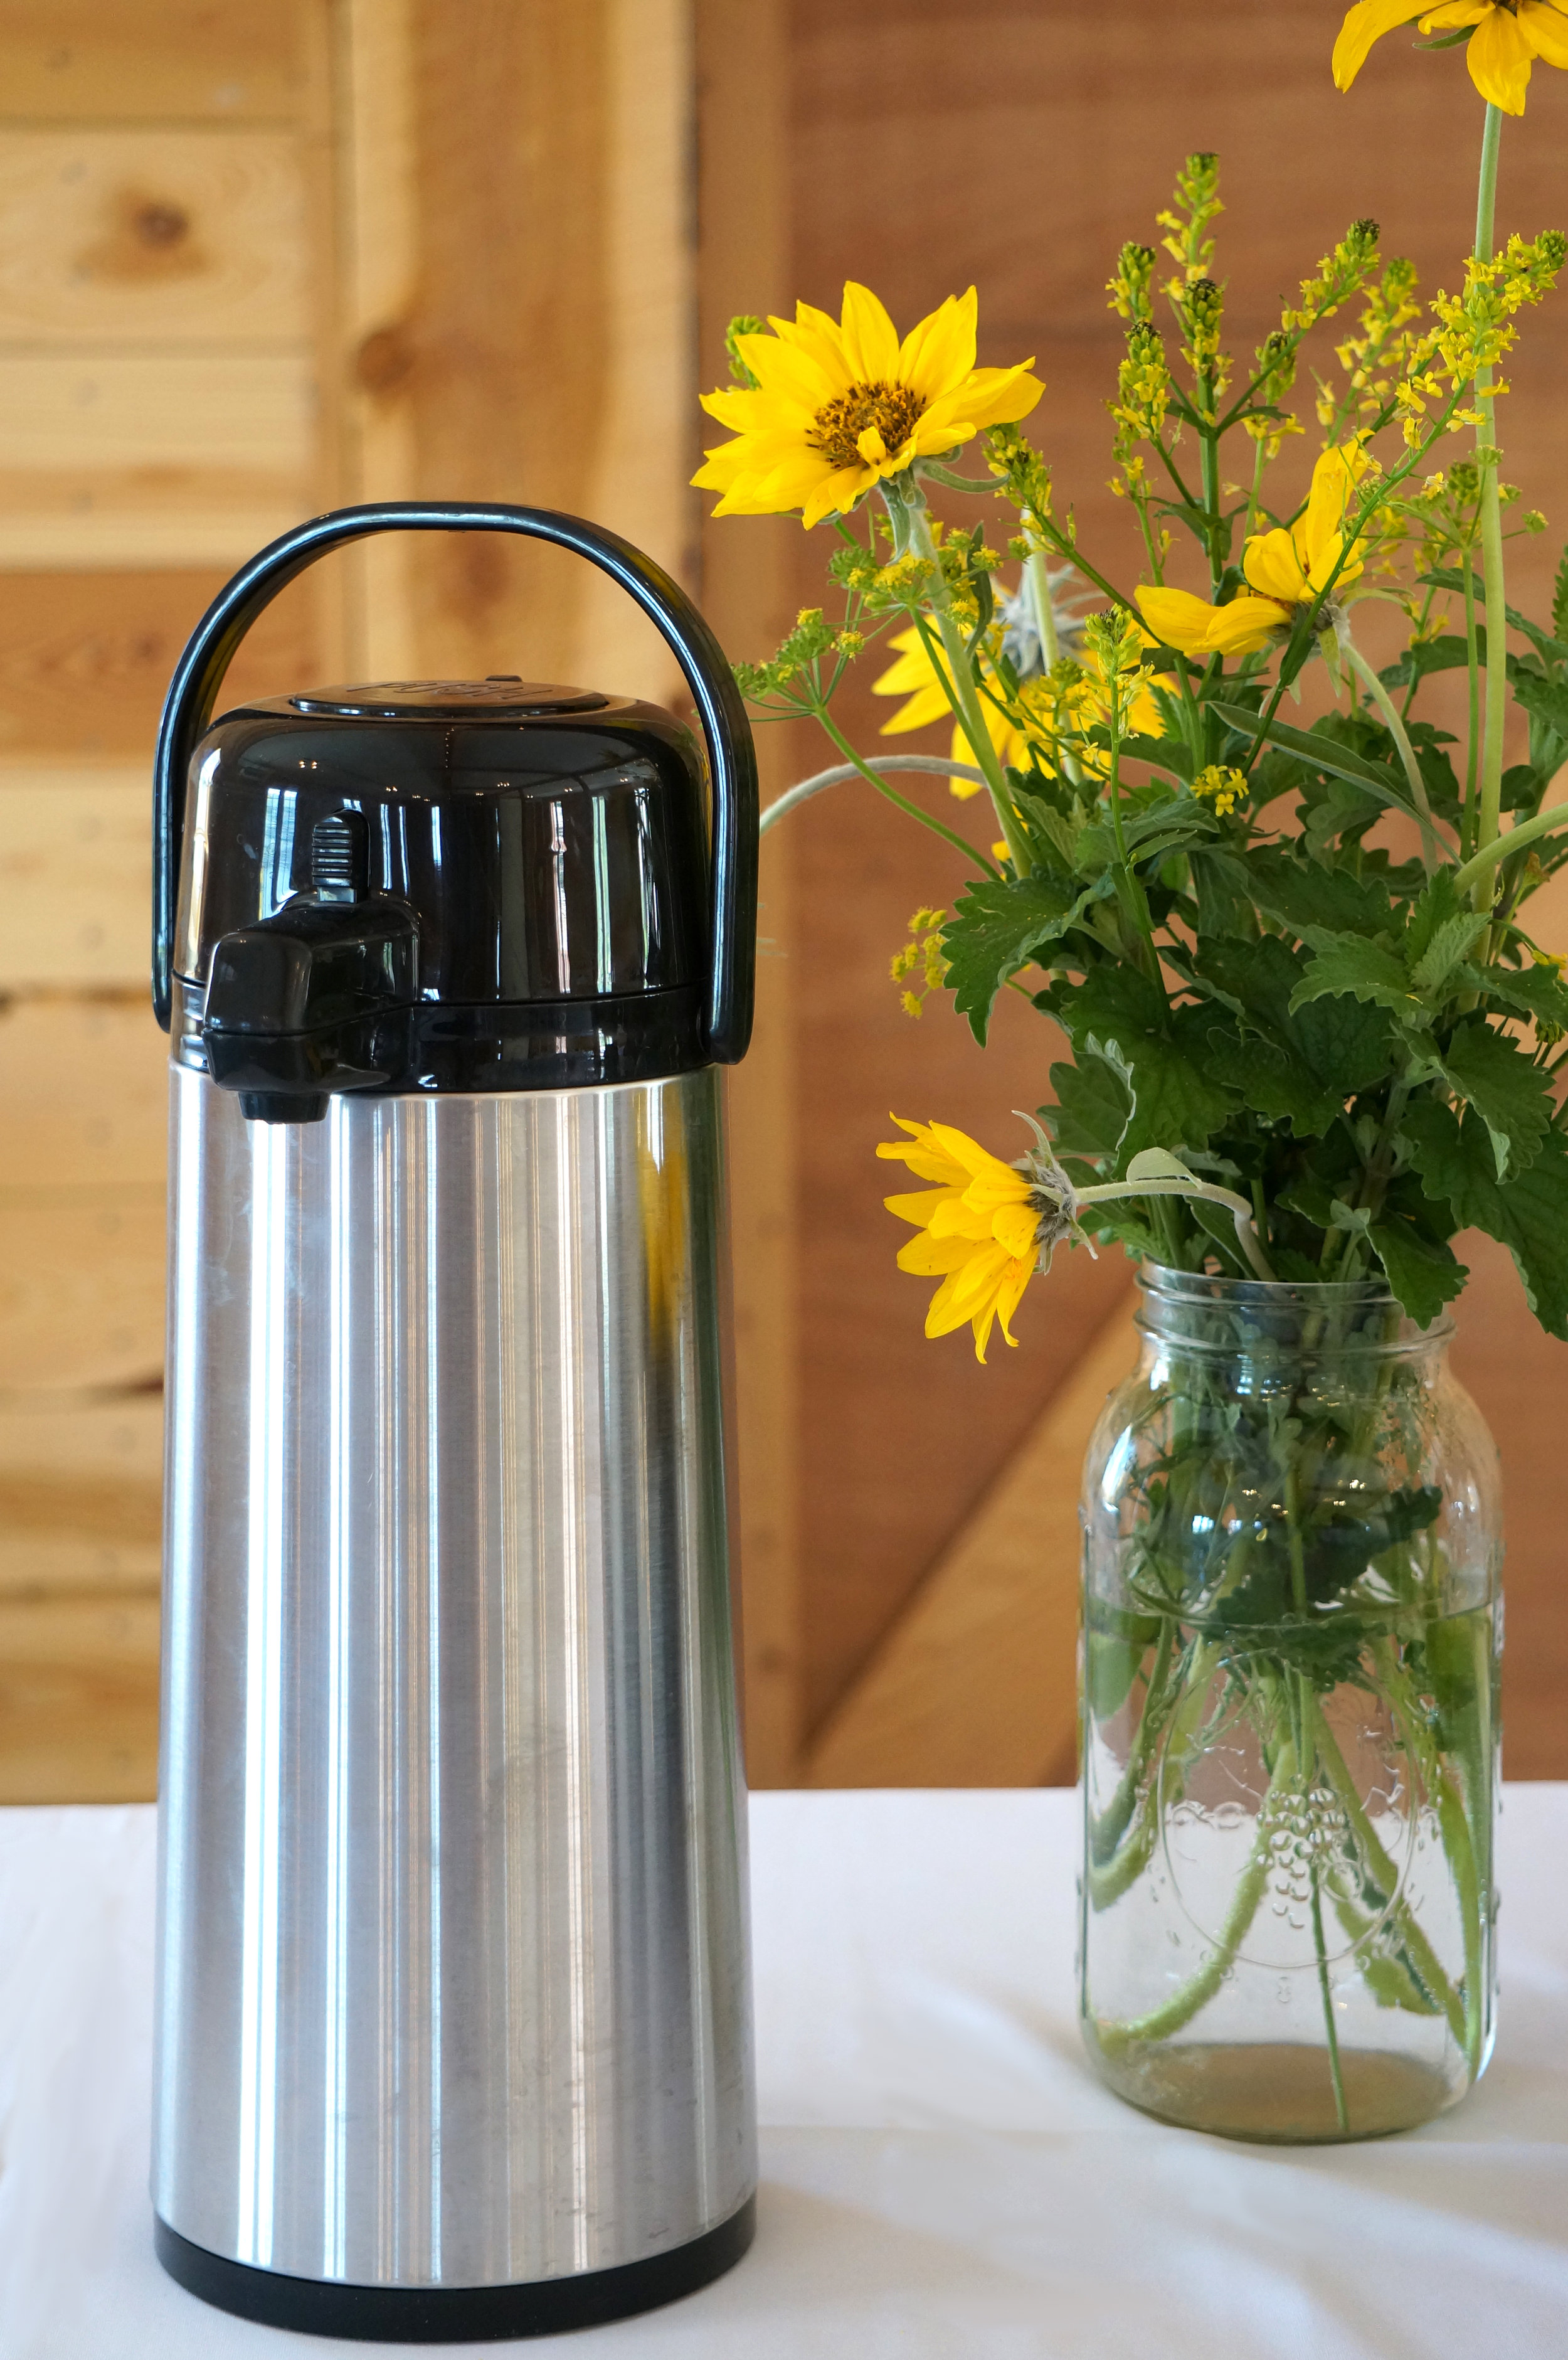 Hot Water or Coffee Carafe